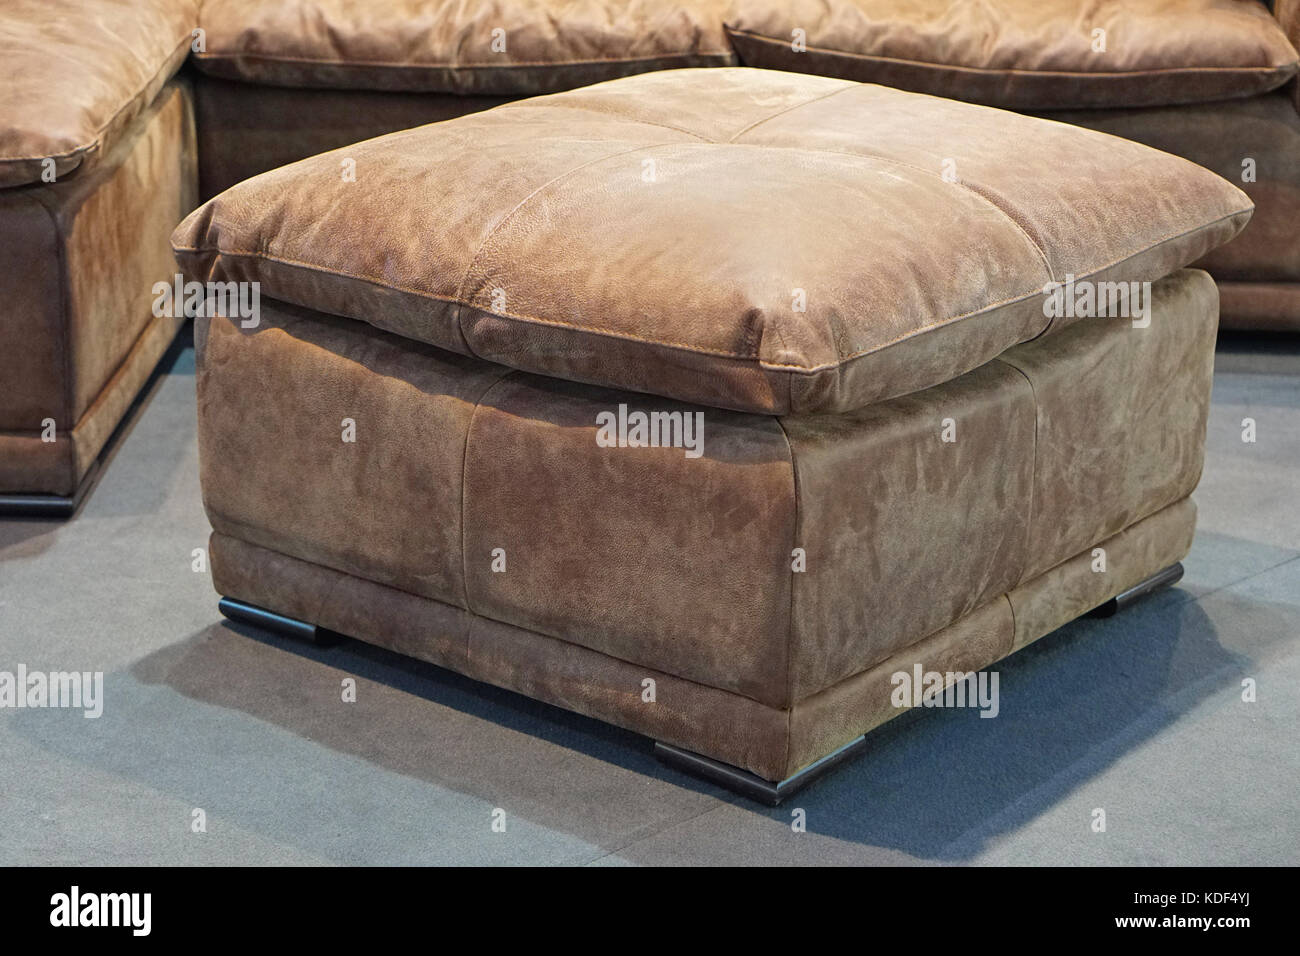 Big leather footstool in living room - Stock Image